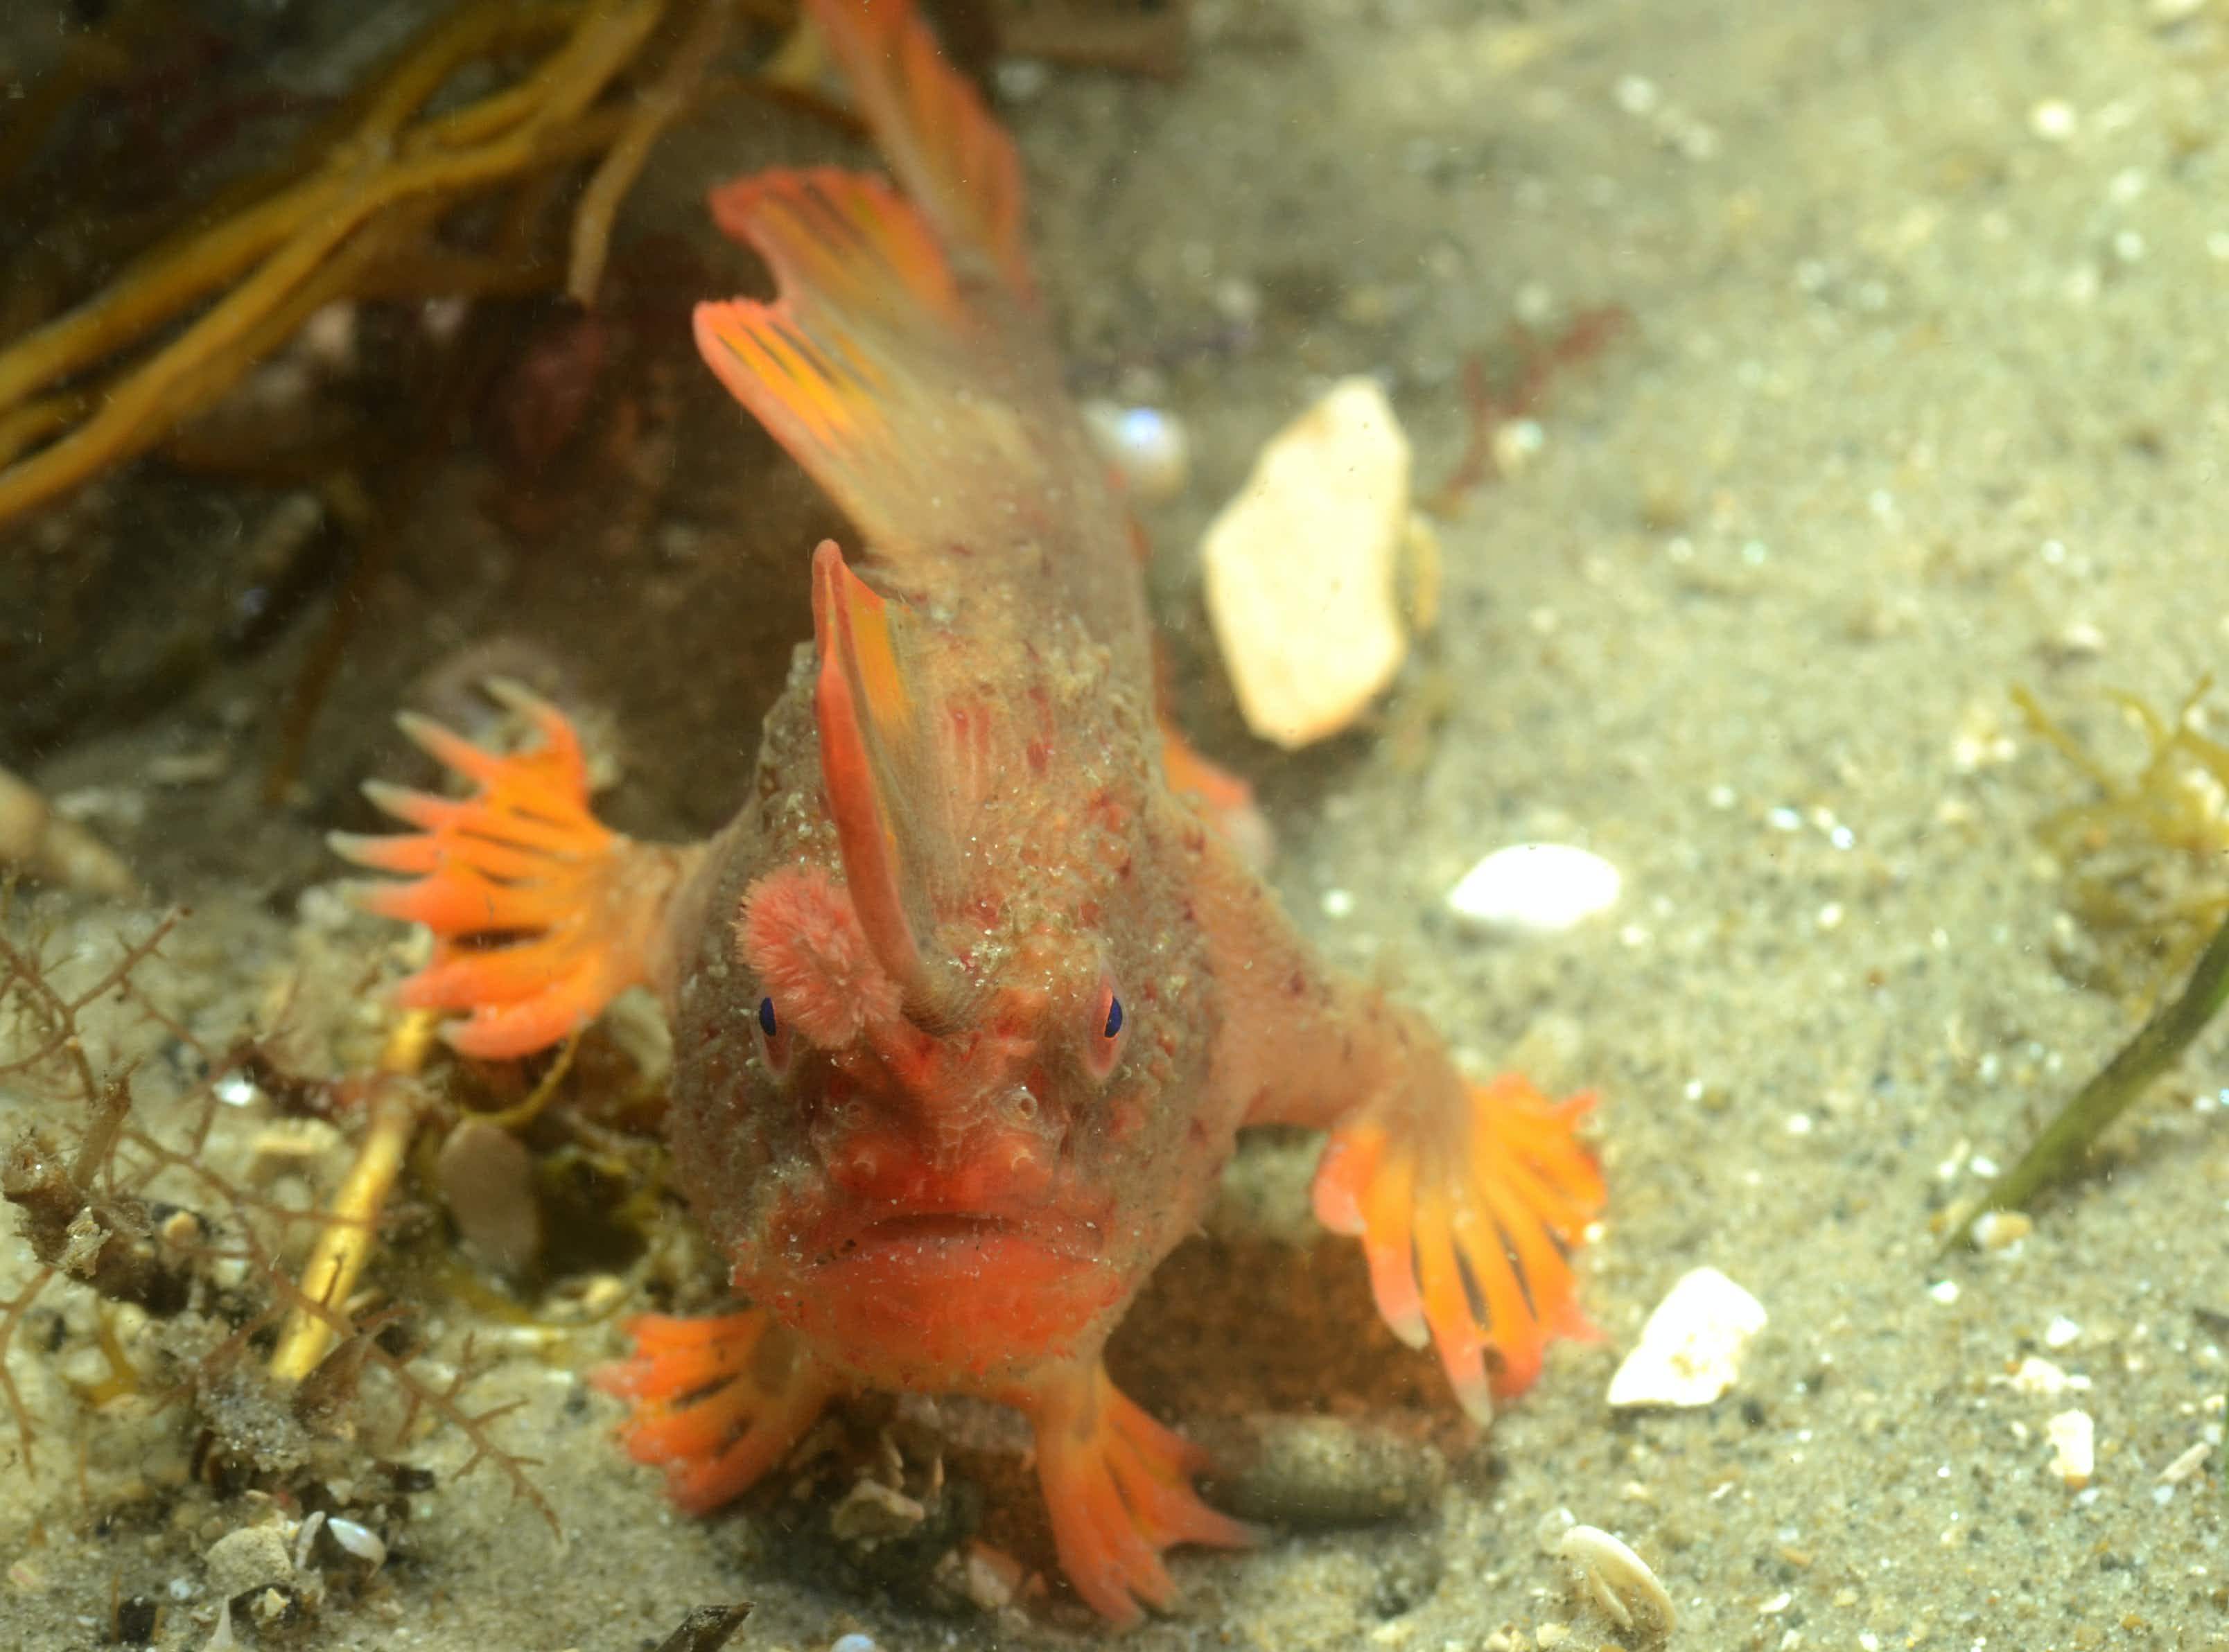 World's rarest 'fish with hands' captured on camera crawling along the seabed in Tasmania